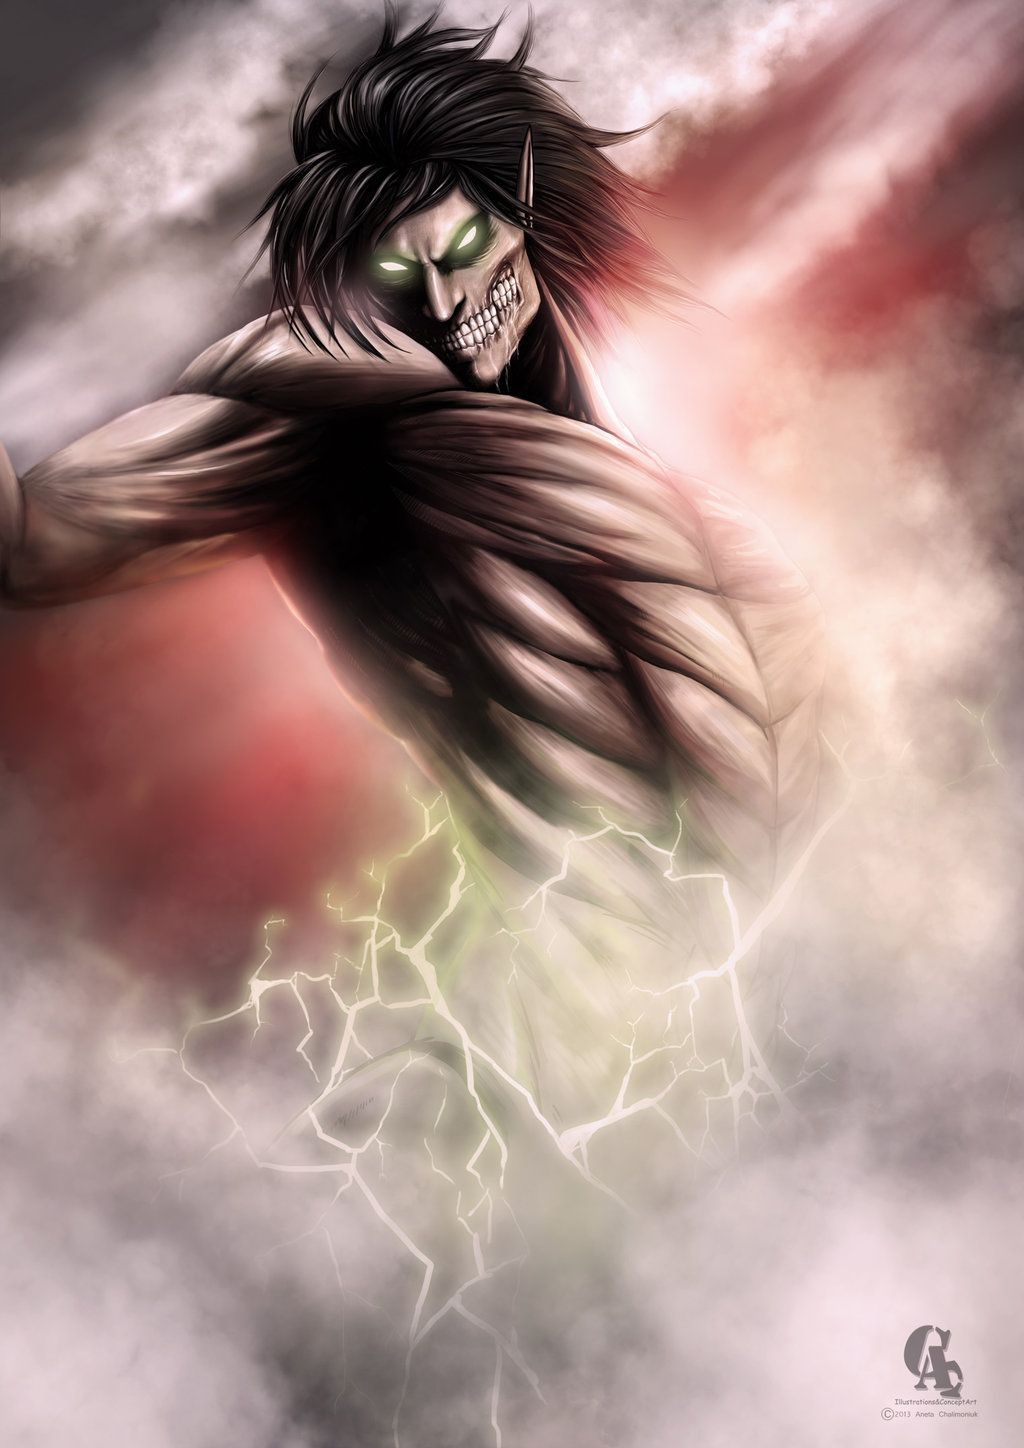 Eren Jaeger titan form by AnetaChalimoniuk on DeviantArt